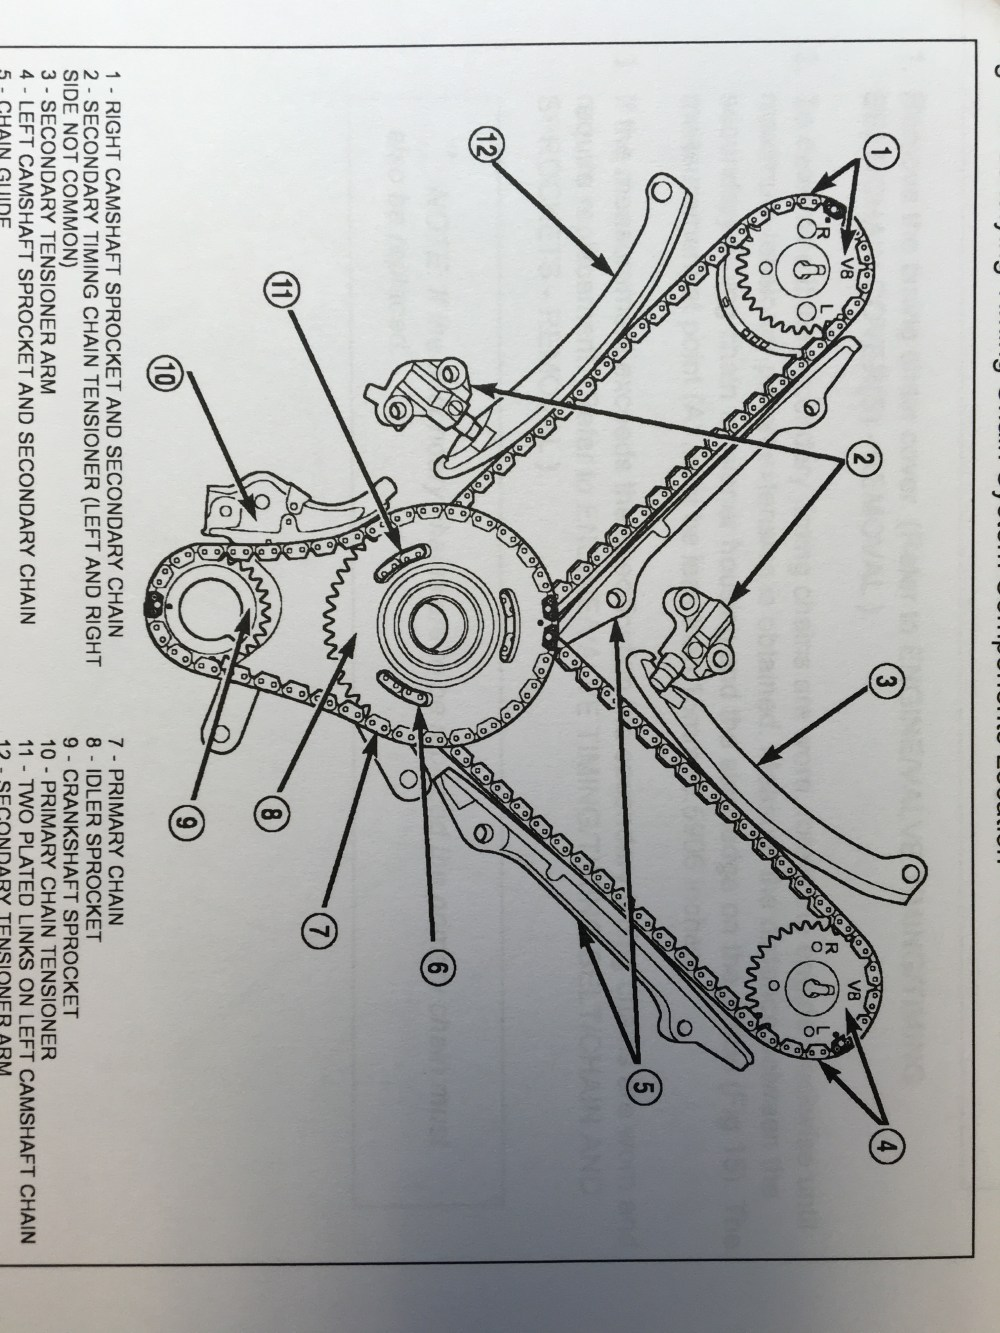 medium resolution of  and then slide the idler sprocket assembly and crank sprocket forward simultaneously to remove the primary and secondary chains